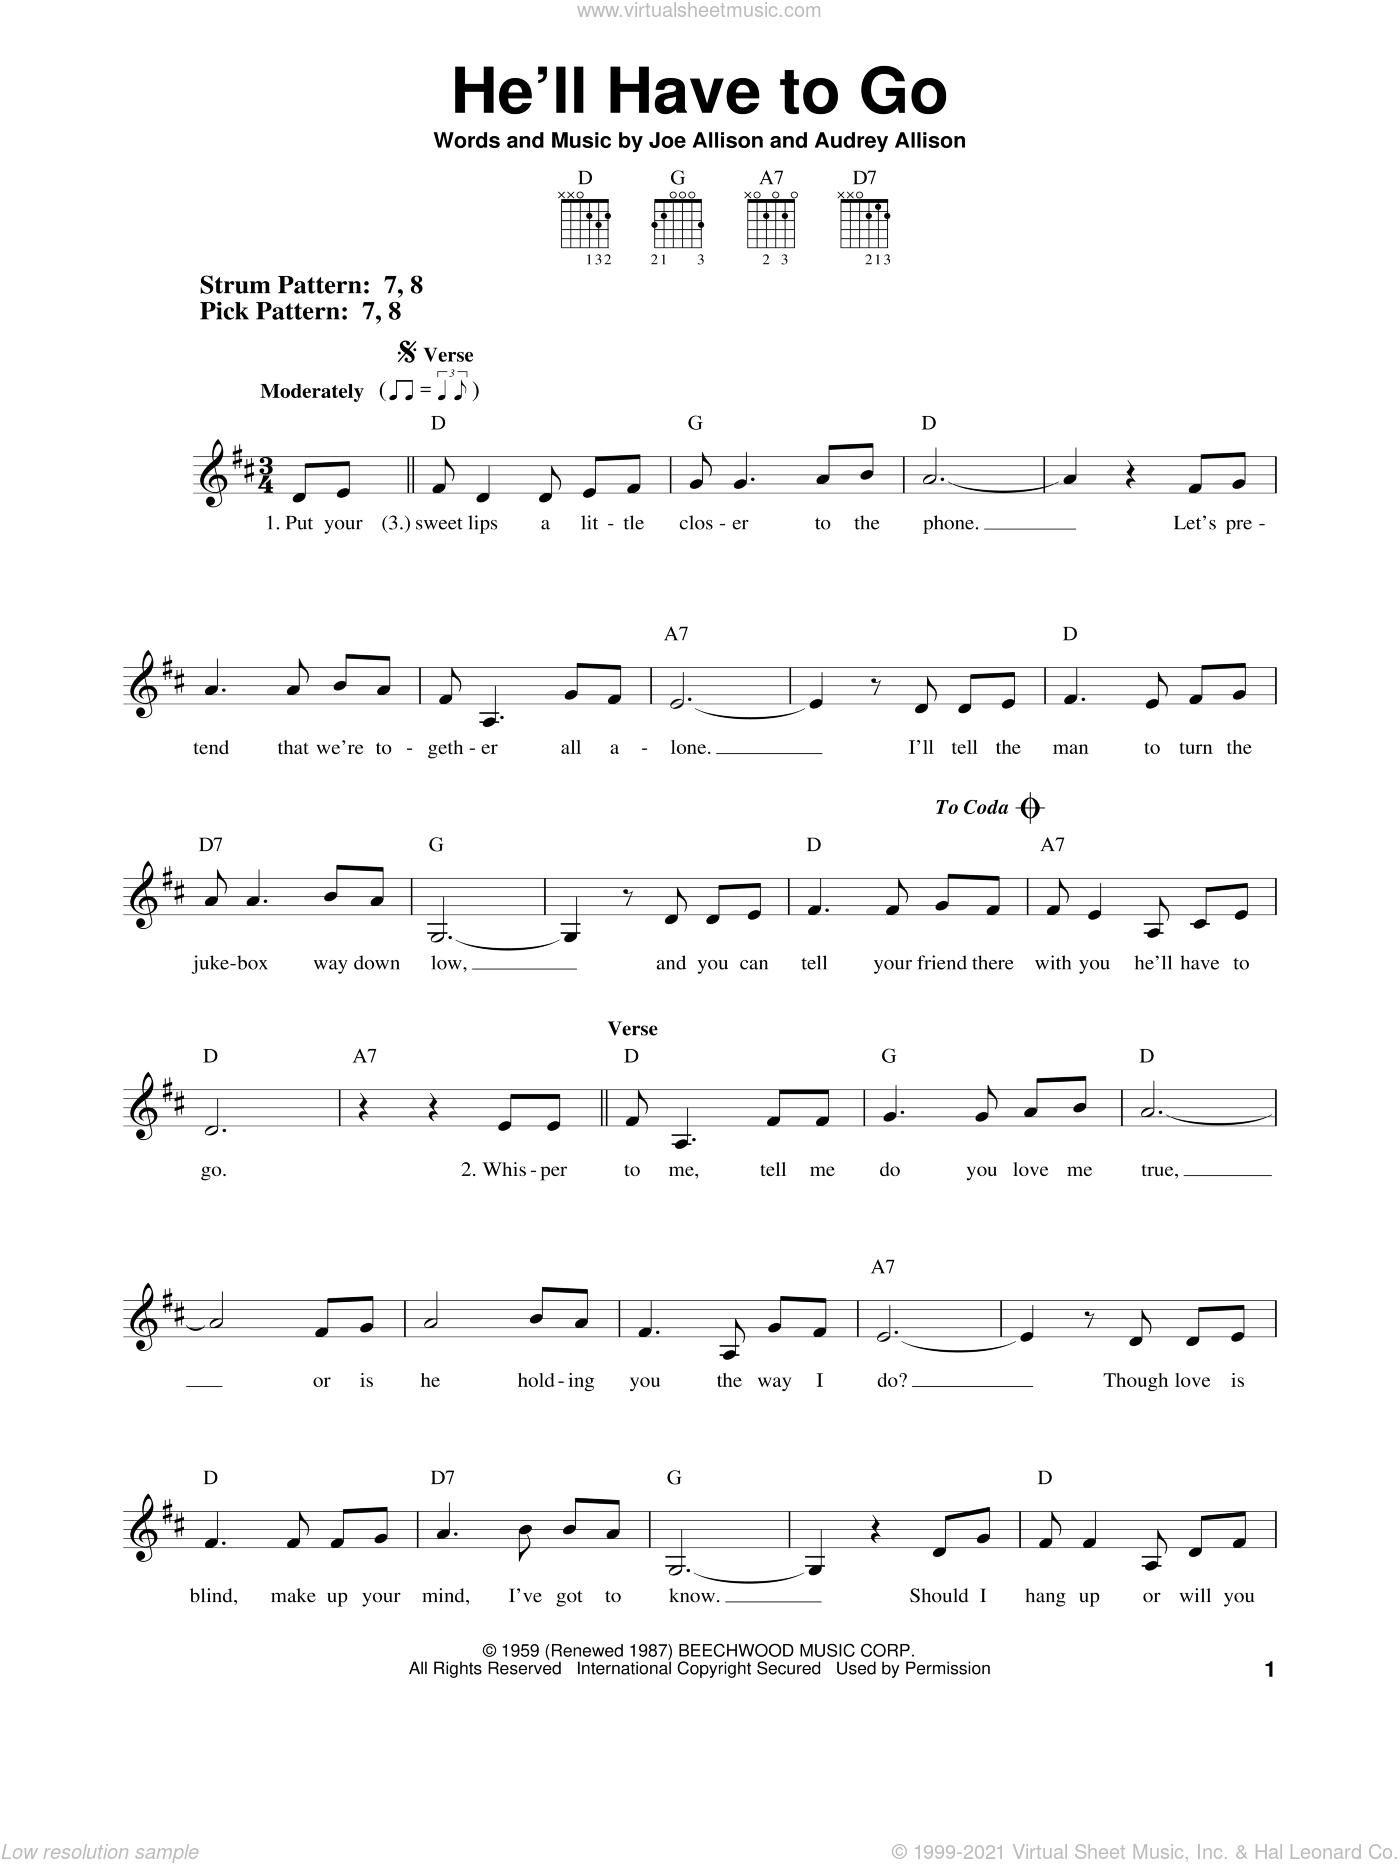 He'll Have To Go sheet music for guitar solo (chords) by Jim Reeves, Audrey Allison and Joe Allison, easy guitar (chords)